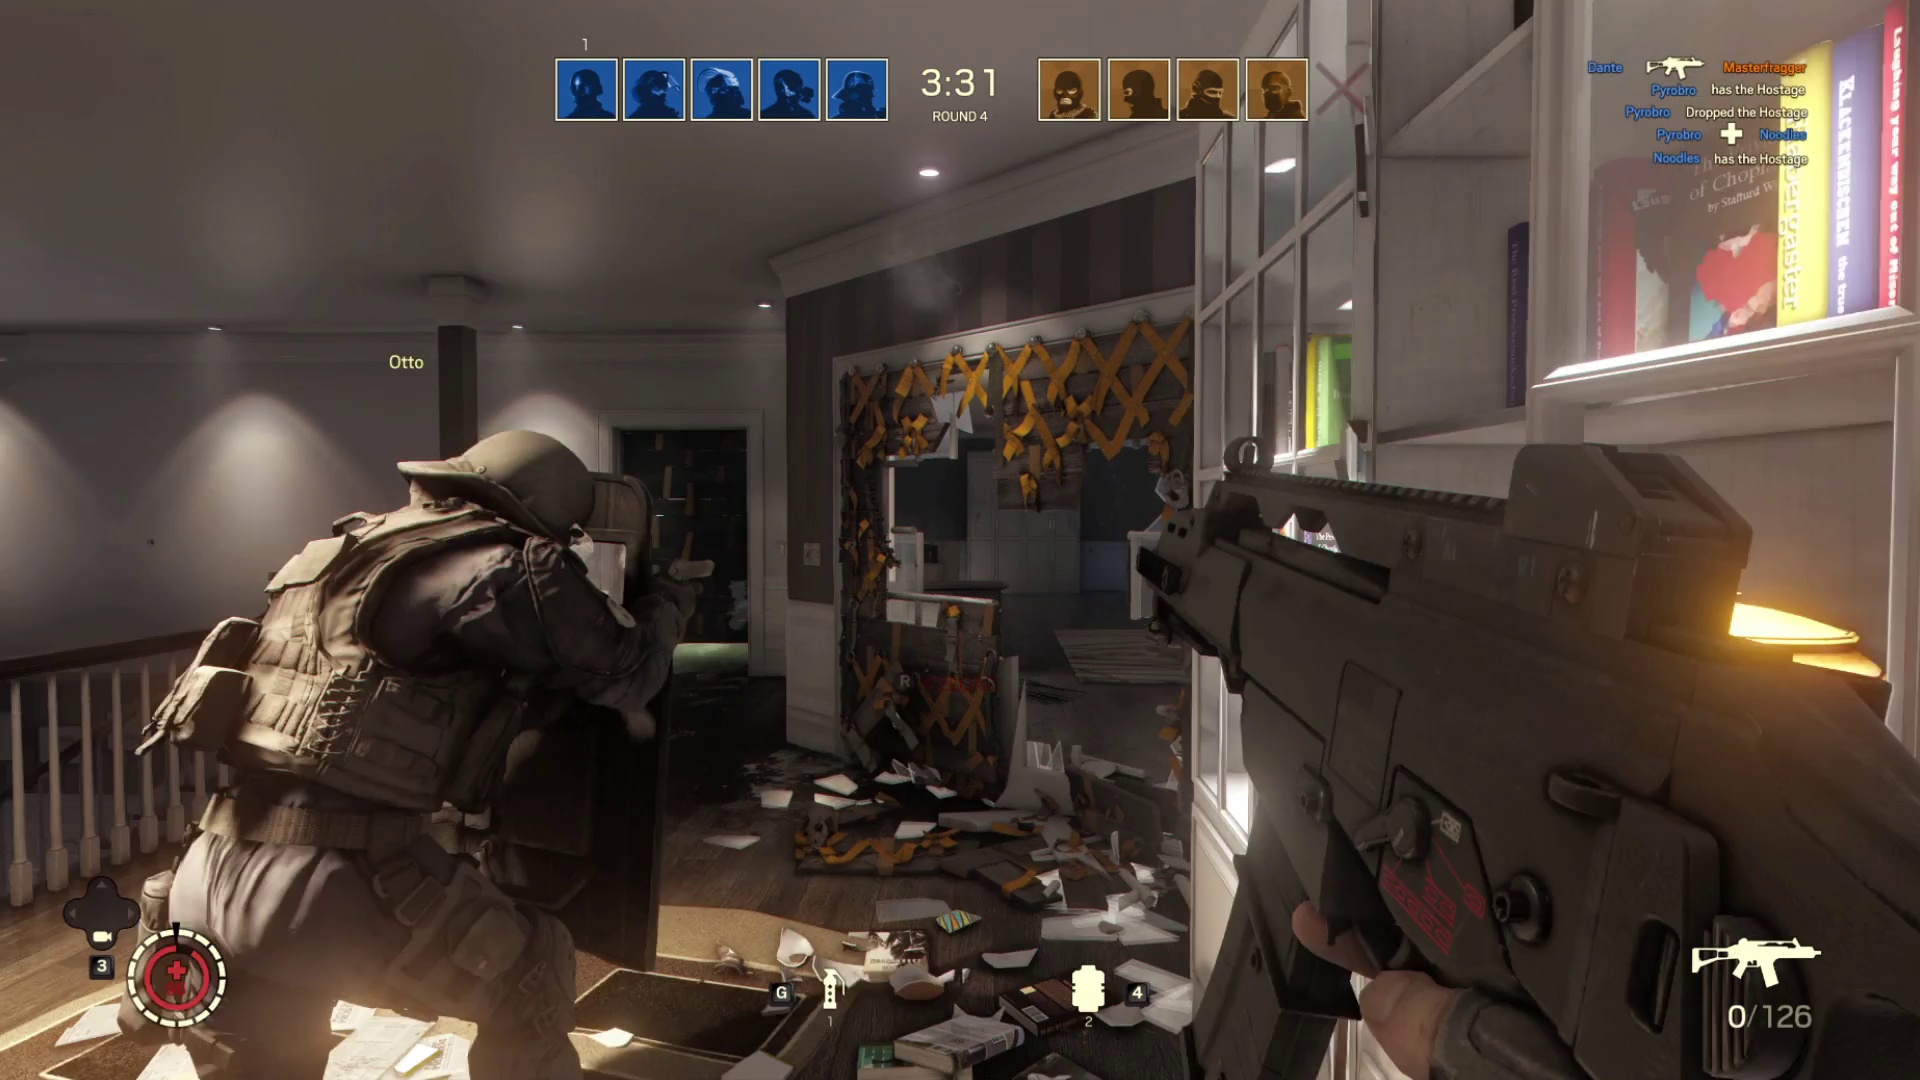 http://cdn1.expertreviews.co.uk/sites/expertreviews/files/2015/12/rainbow_six_siege_2.jpg?itok=7__JBd8T